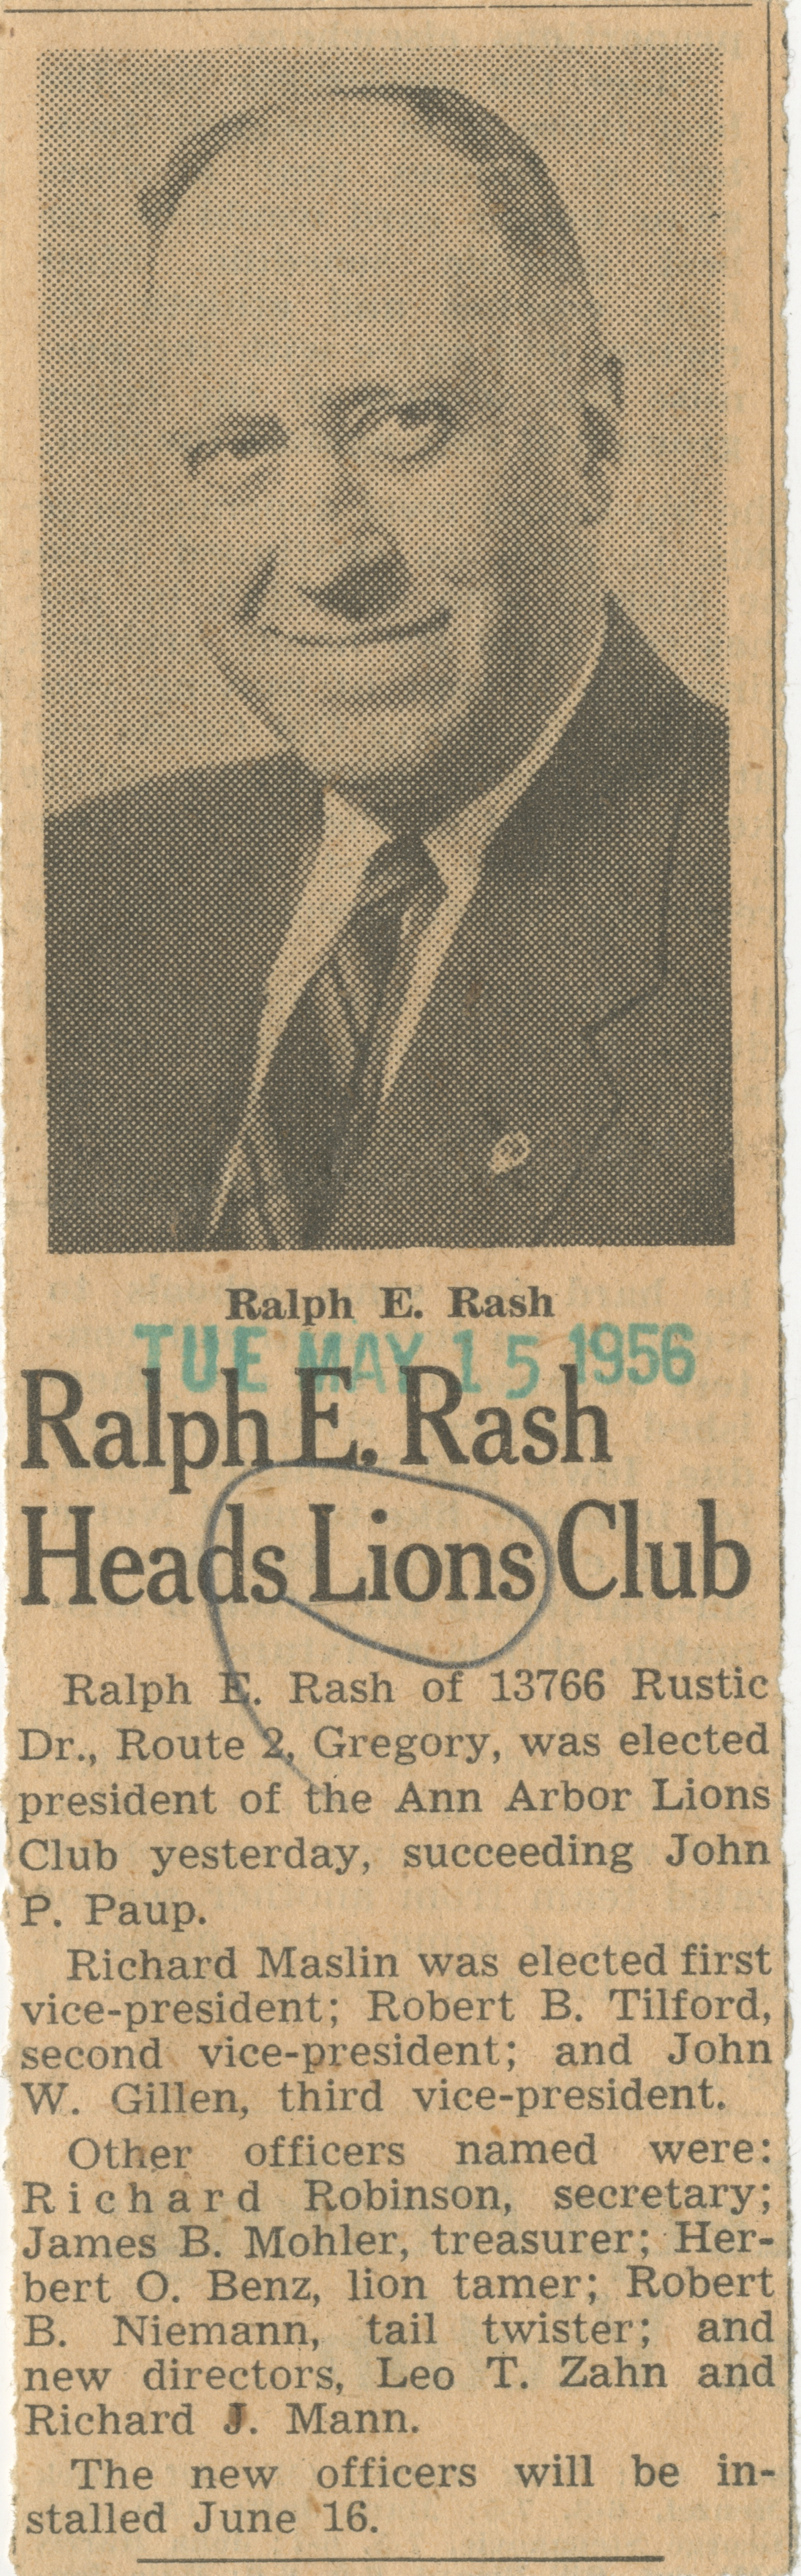 Ralph E. Rash Heads Lions Club image